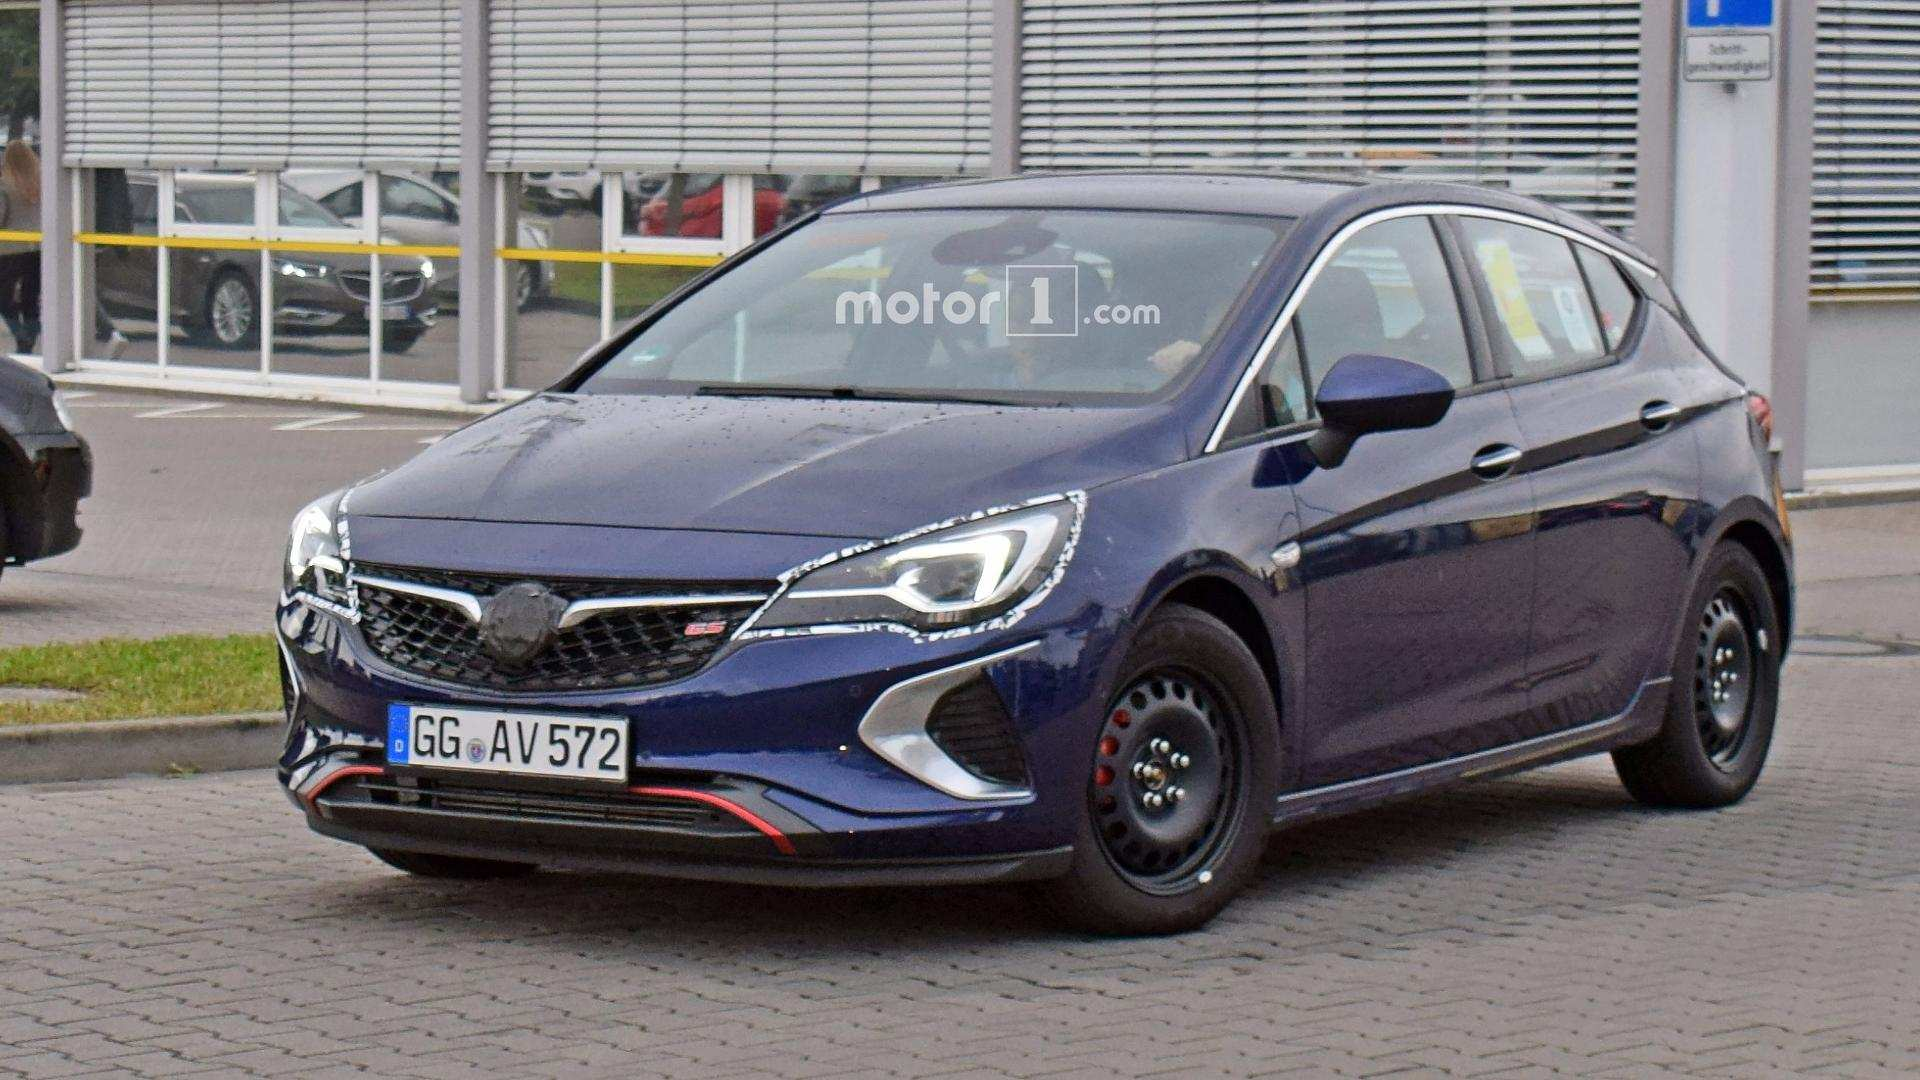 78 Best Review Opel Astra Gsi 2020 Specs and Review for Opel Astra Gsi 2020